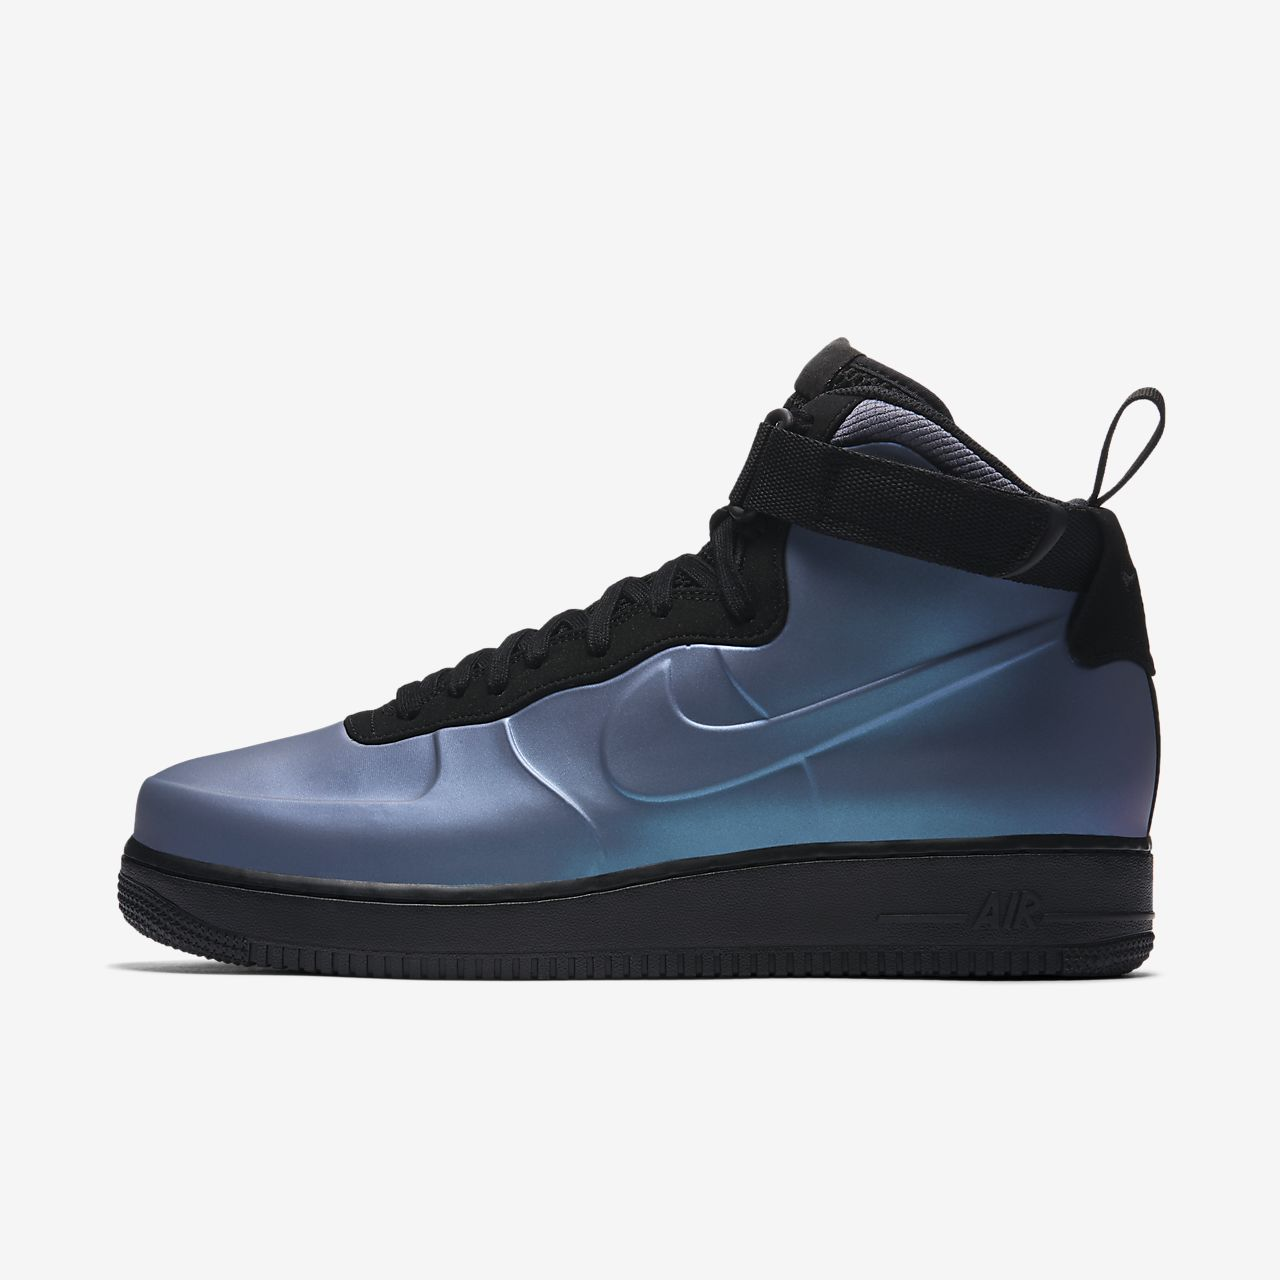 nike men's air force 1 nz